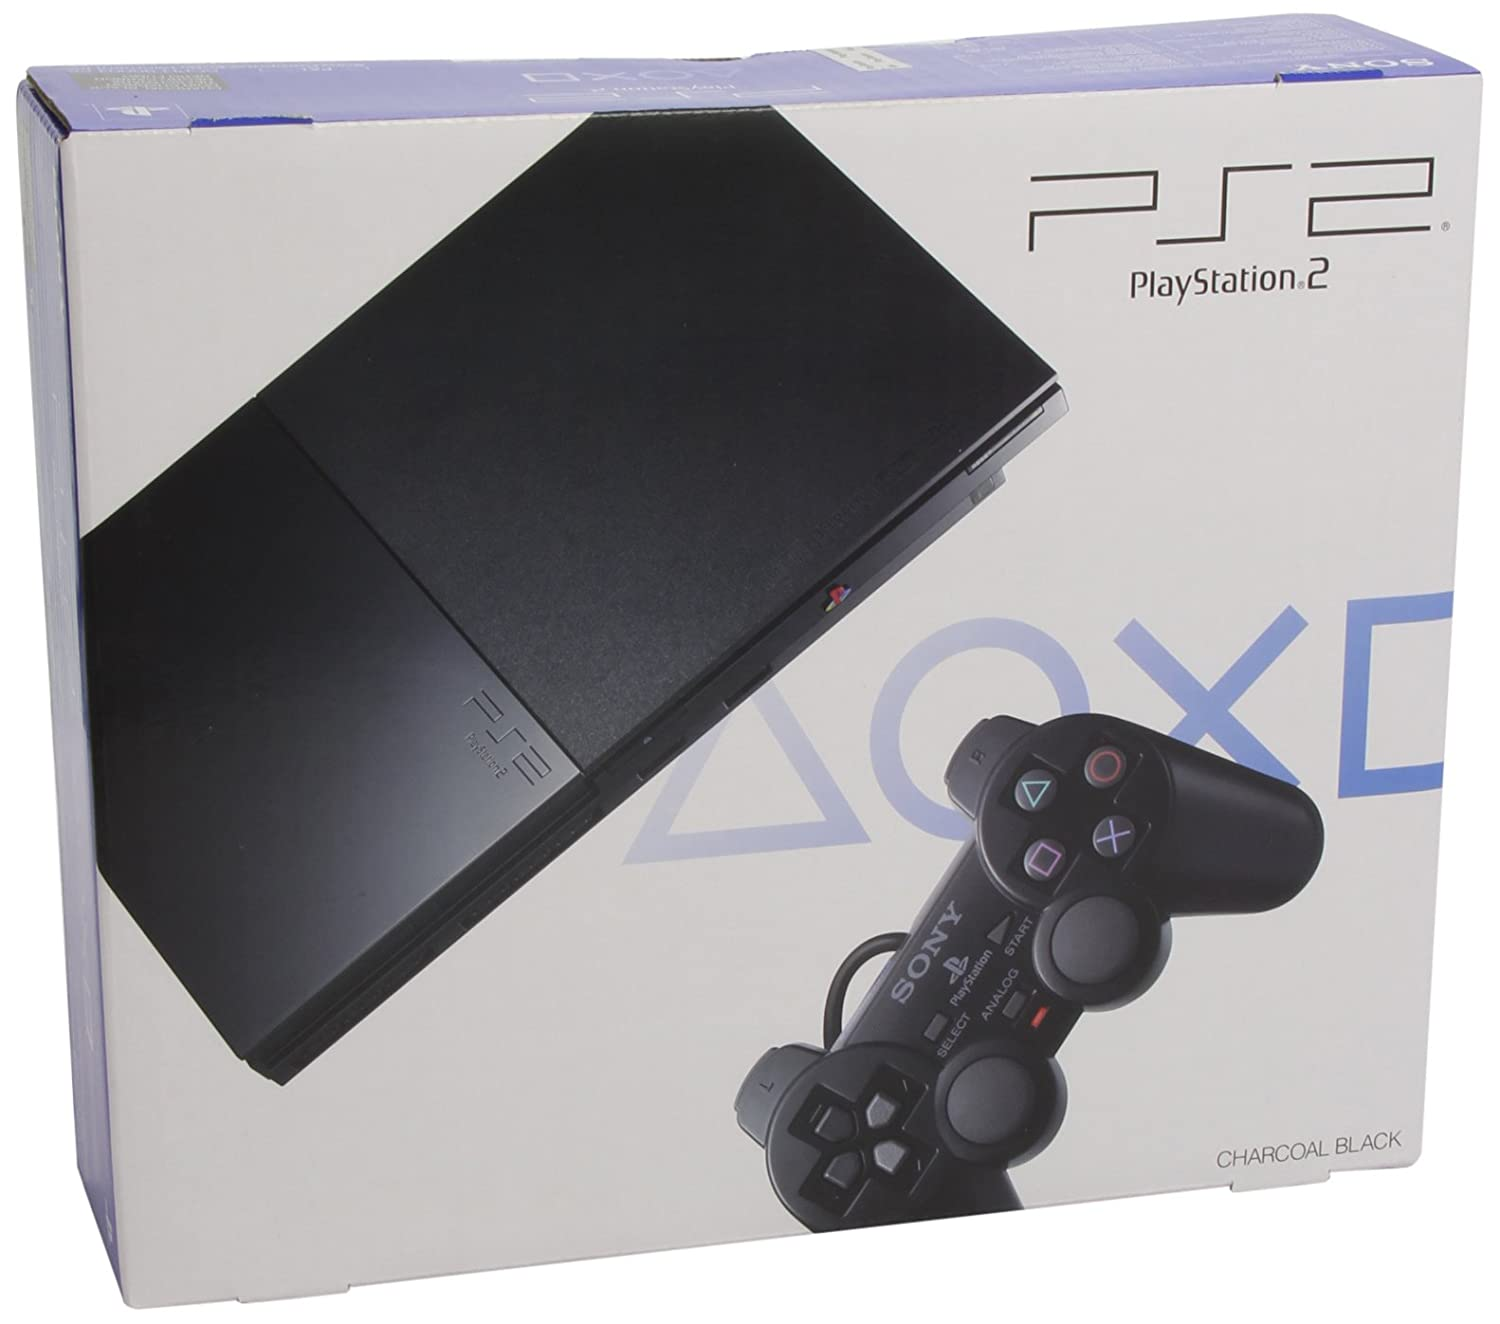 sony playstation 2 slim. sony playstation 2 console slim - black: amazon.co.uk: pc \u0026 video games t